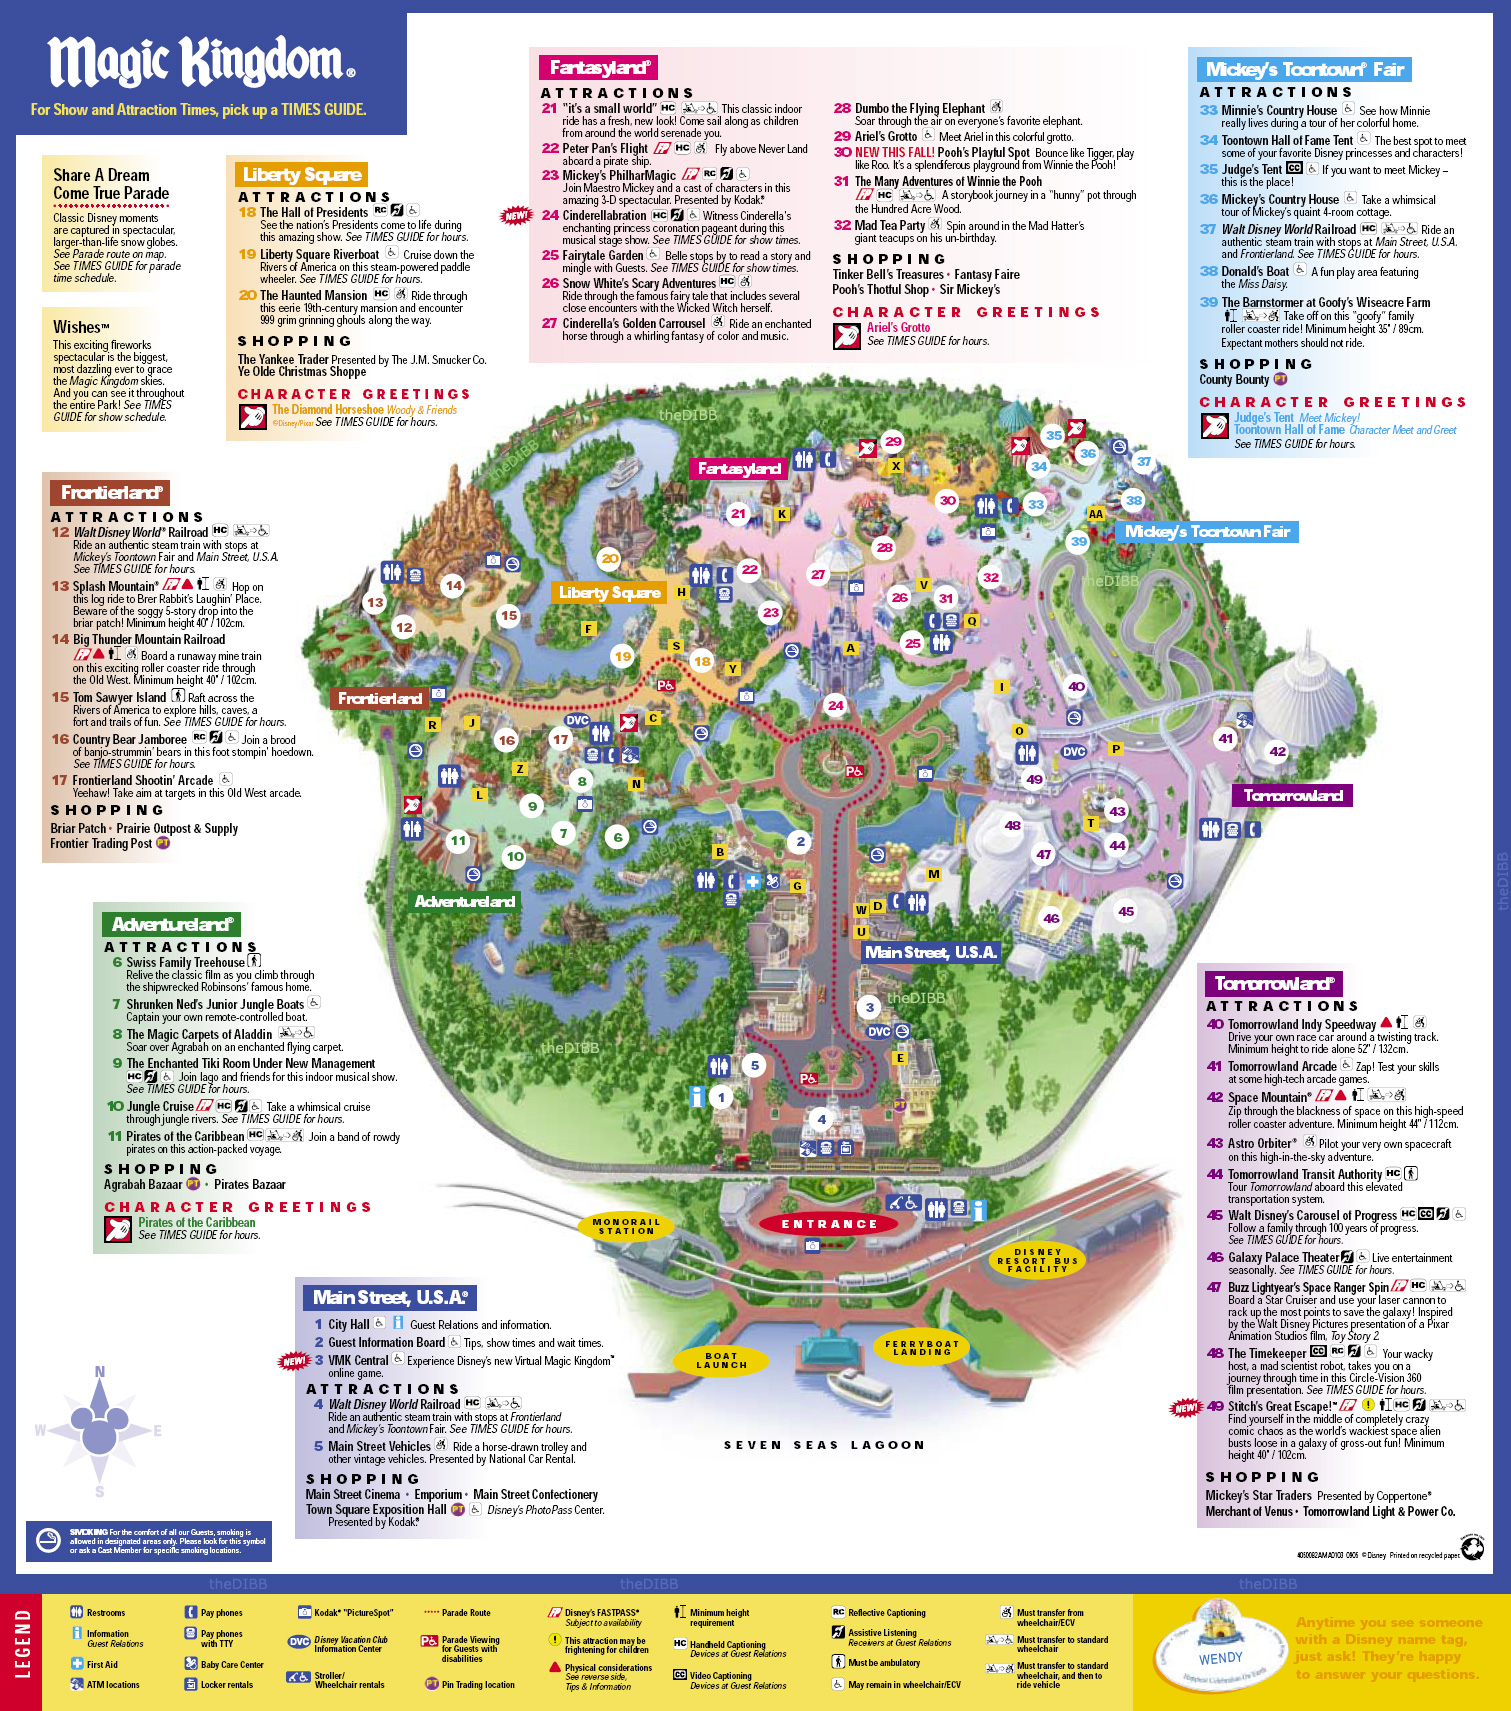 graphic relating to Printable Magic Kingdom Map identified as Disneys Magic Kingdom Map - Disney039s Magic Kingdom Orlando